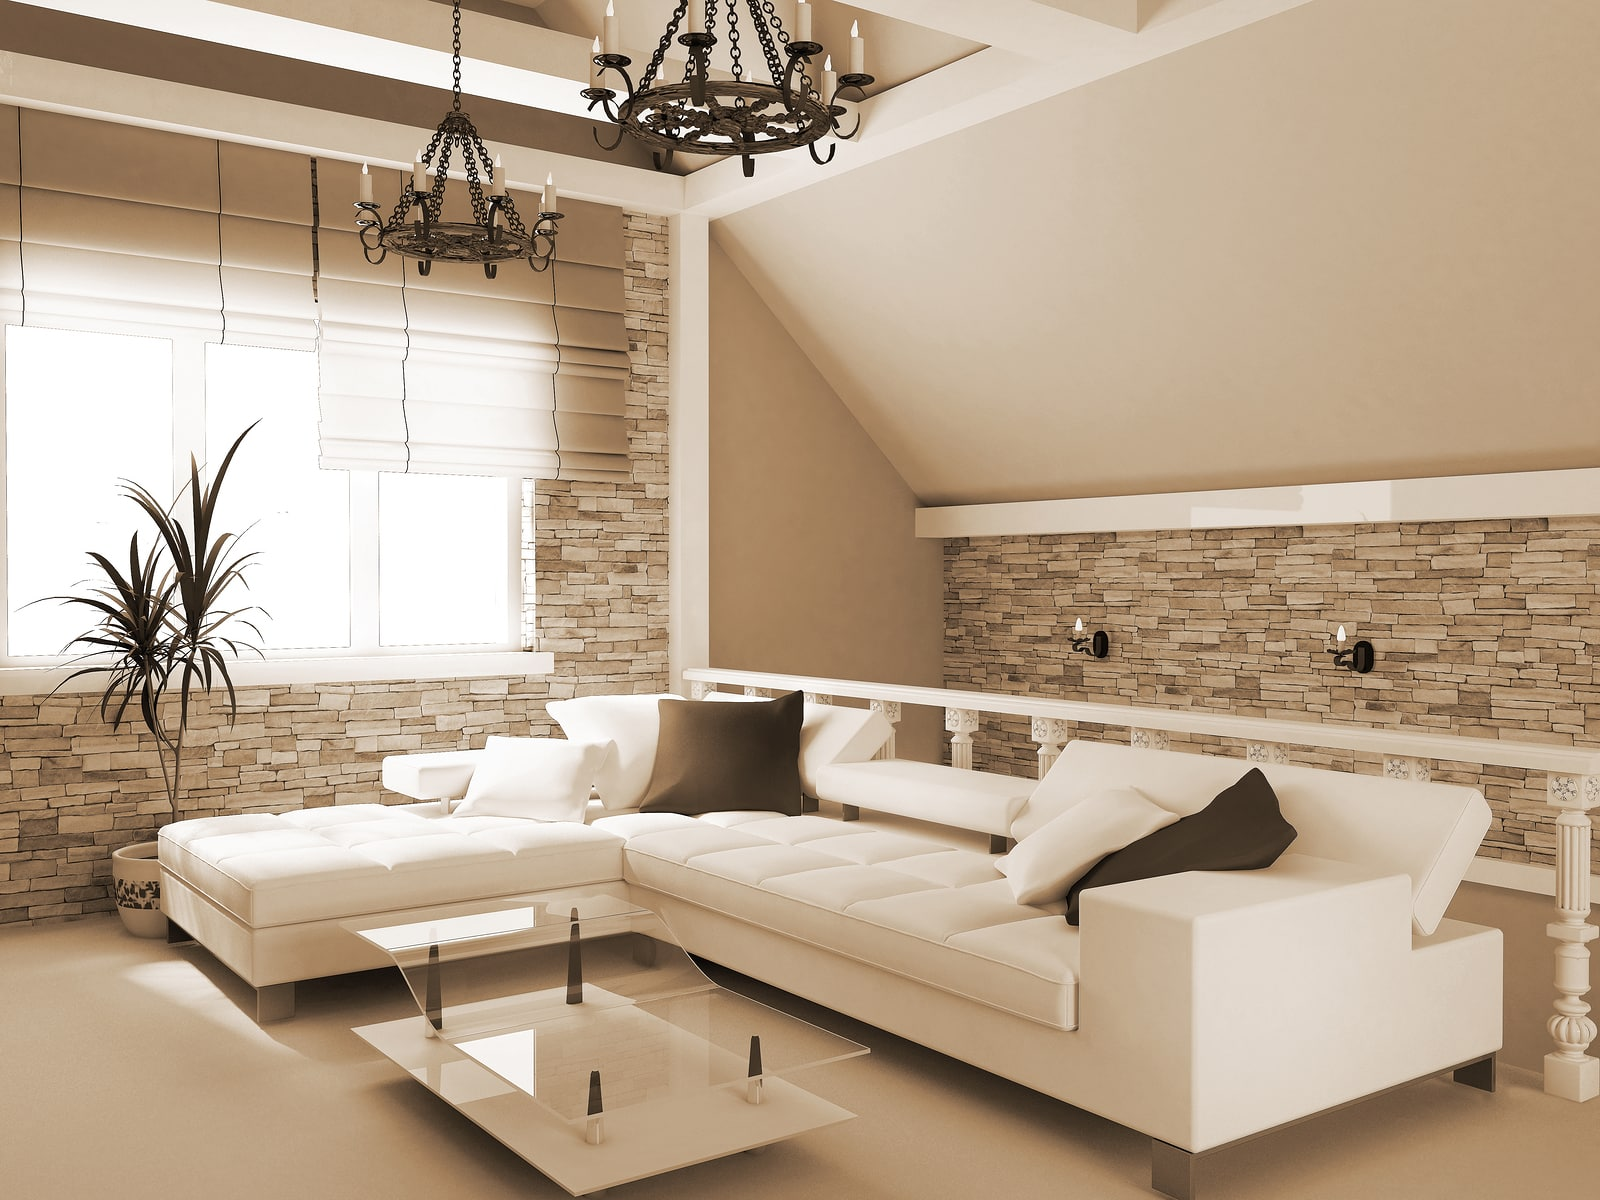 Modern interior of a room exclusive design